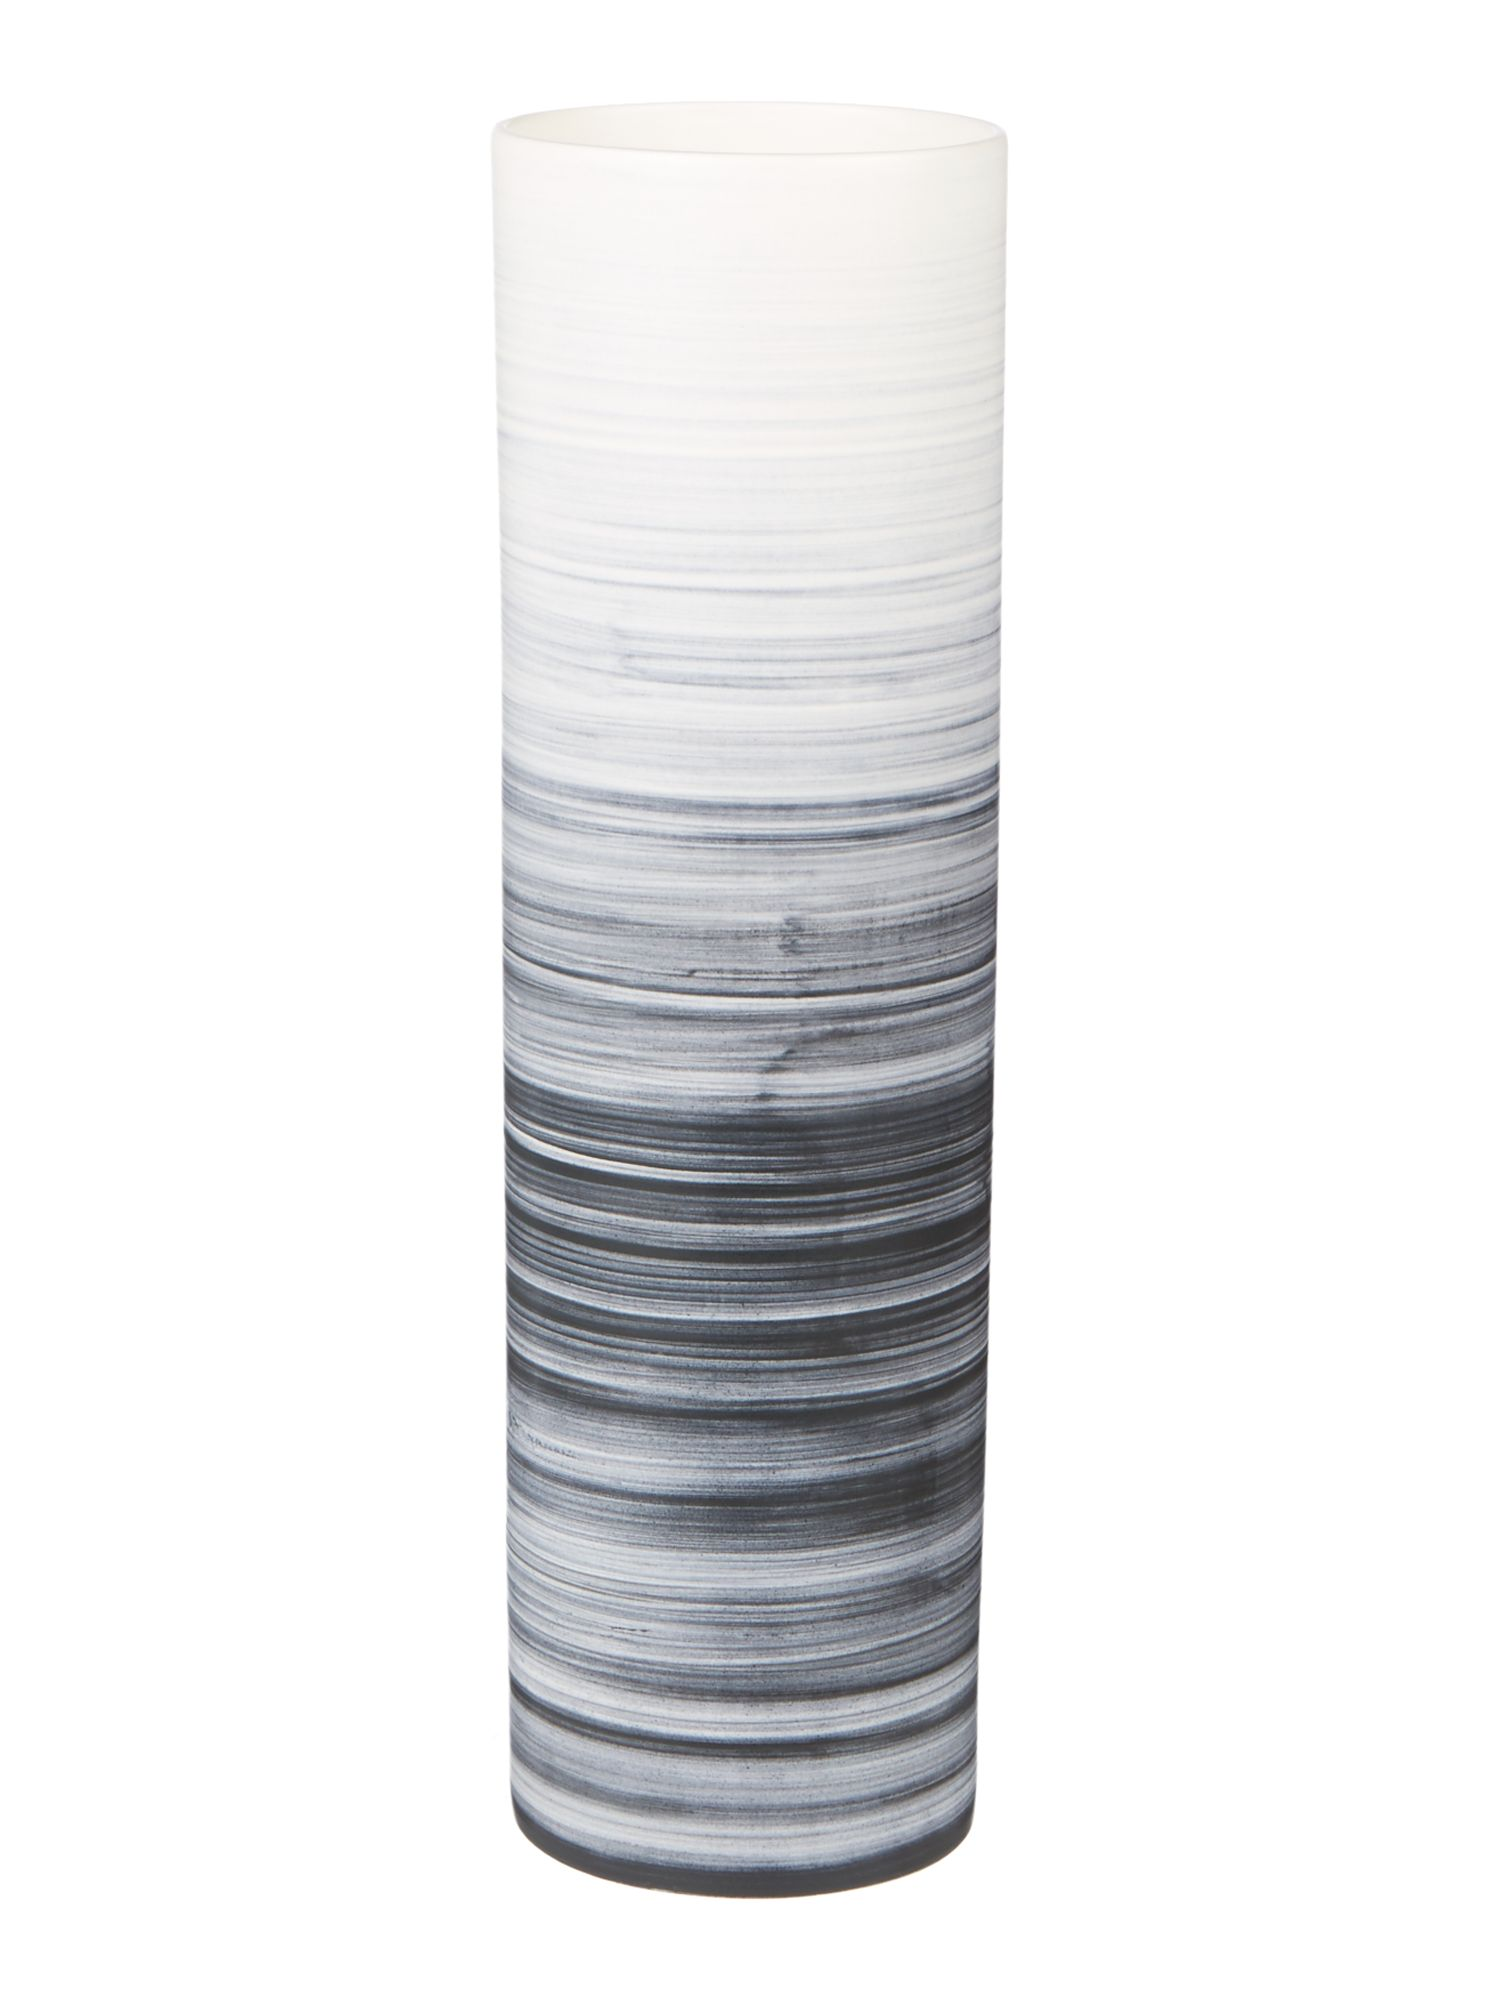 Image of Gray & Willow Avo large column vase